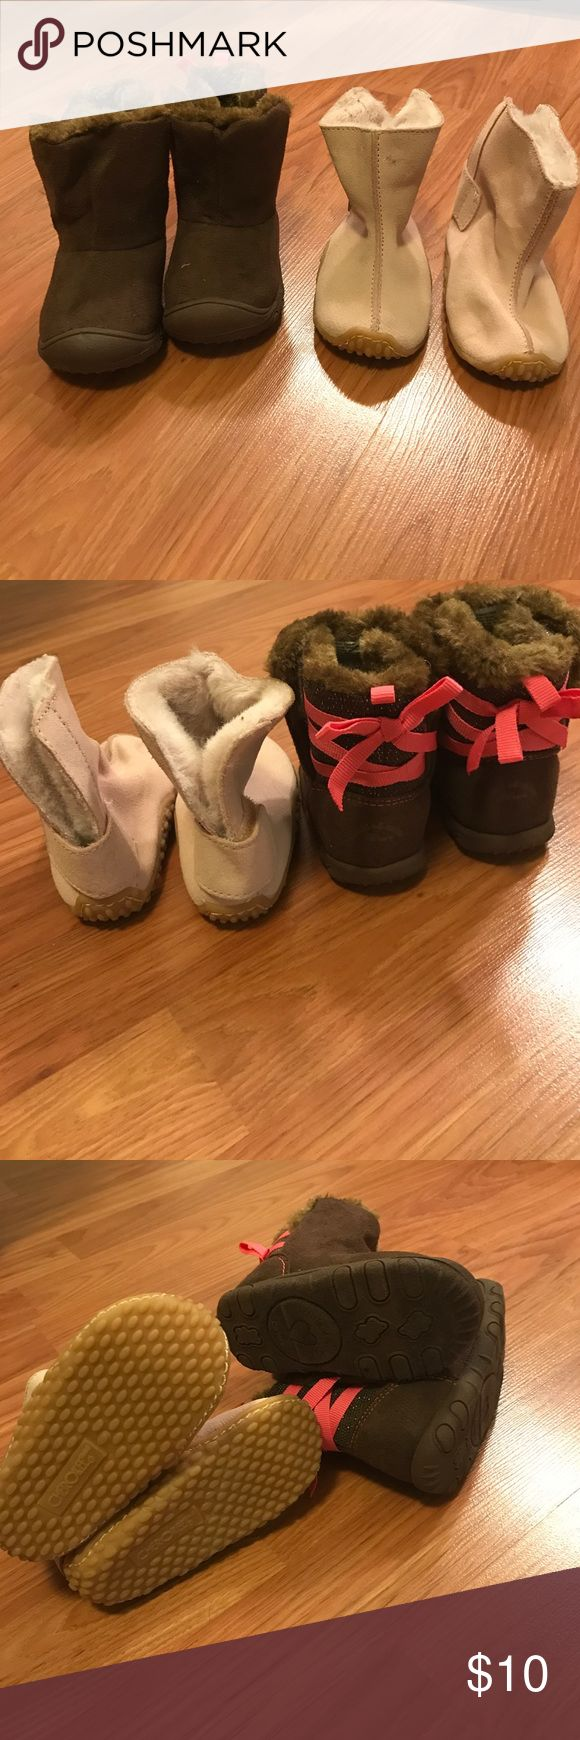 Two sets of toddler boots. Size 4 Pair of dark brown boots with faux fur and pink ribbon accents up the back. Double sided Velcro openings for easy access. Light pink/ mauve boots with light faux fur interior. Velcro strip around back for easy on and off. Shoes Boots